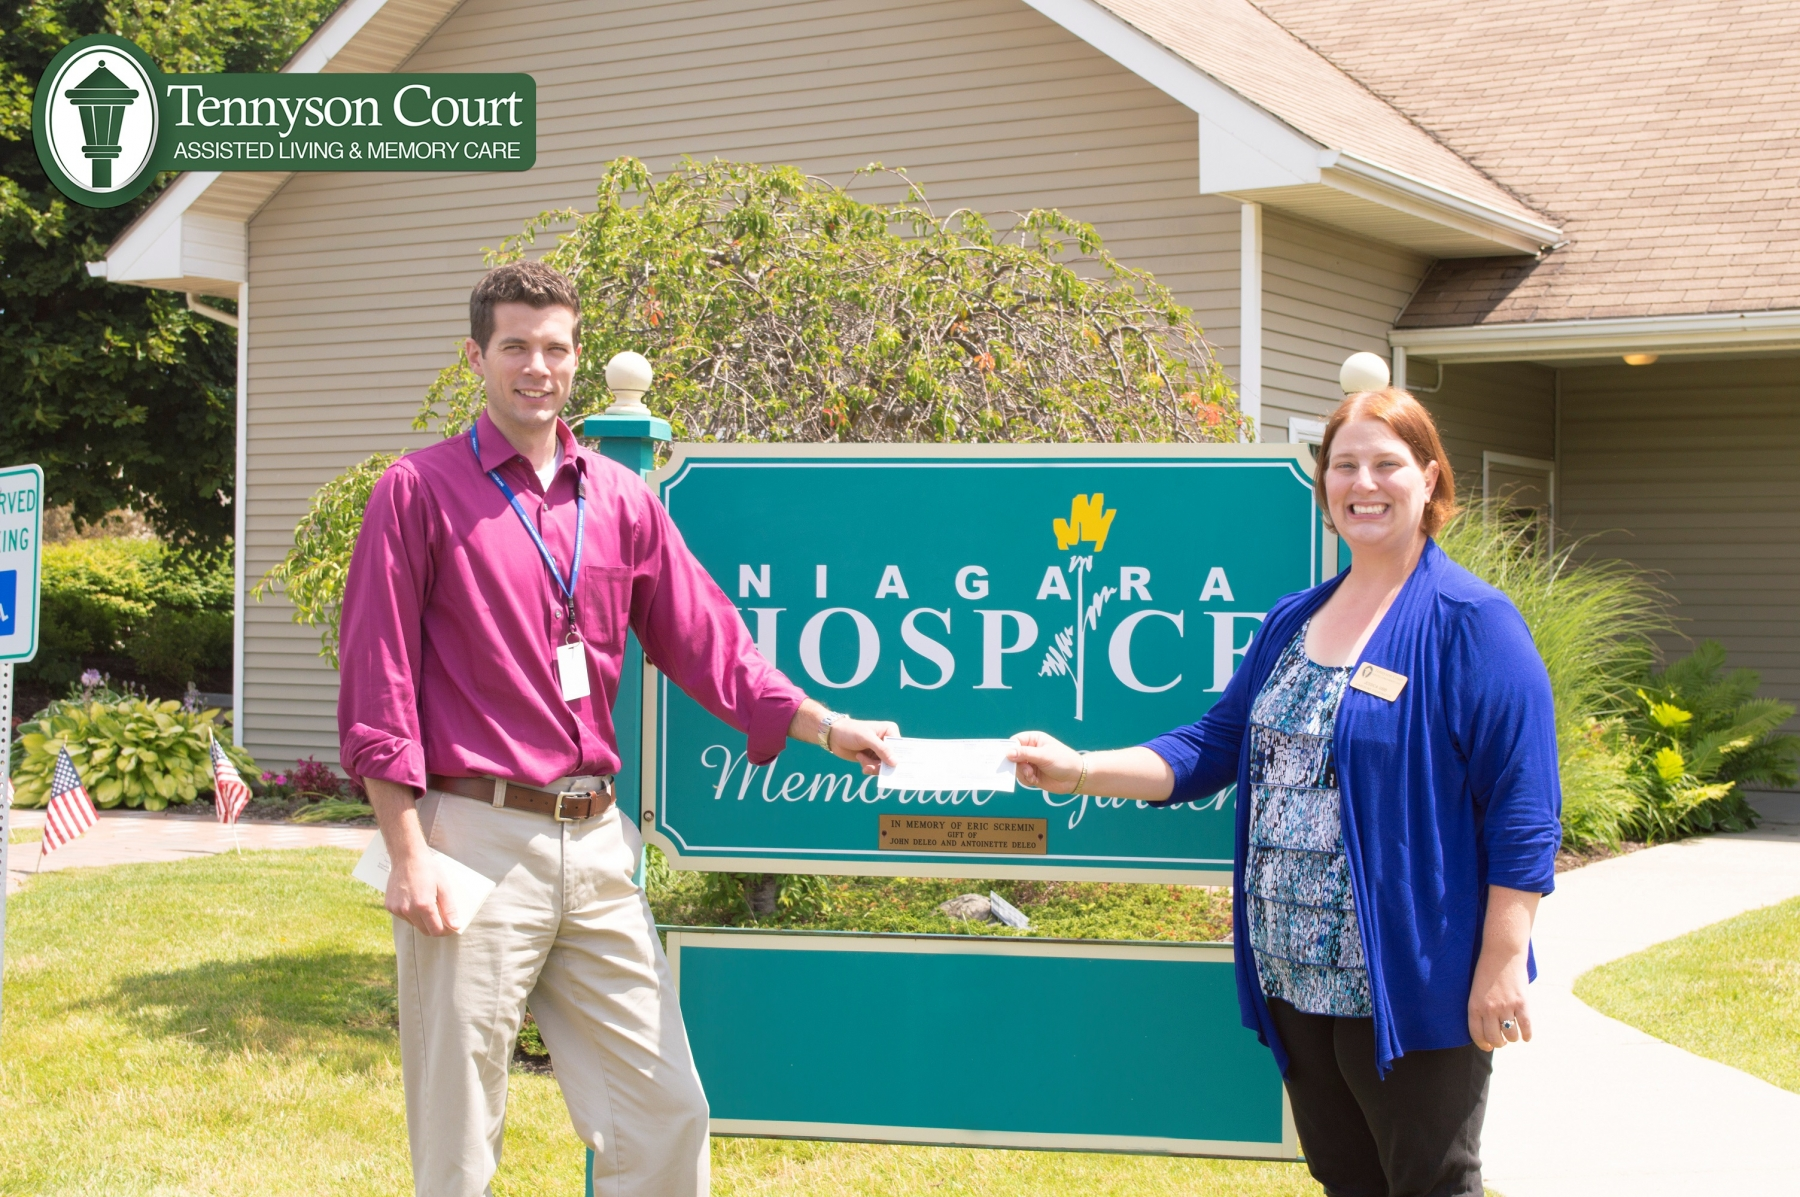 Niagara Hospice Director of Development Brendan McIntyre receives a donation from Tennyson Court Marketing Director Jessica Gibb at Niagara Hospice's campus in Lockport, NY.